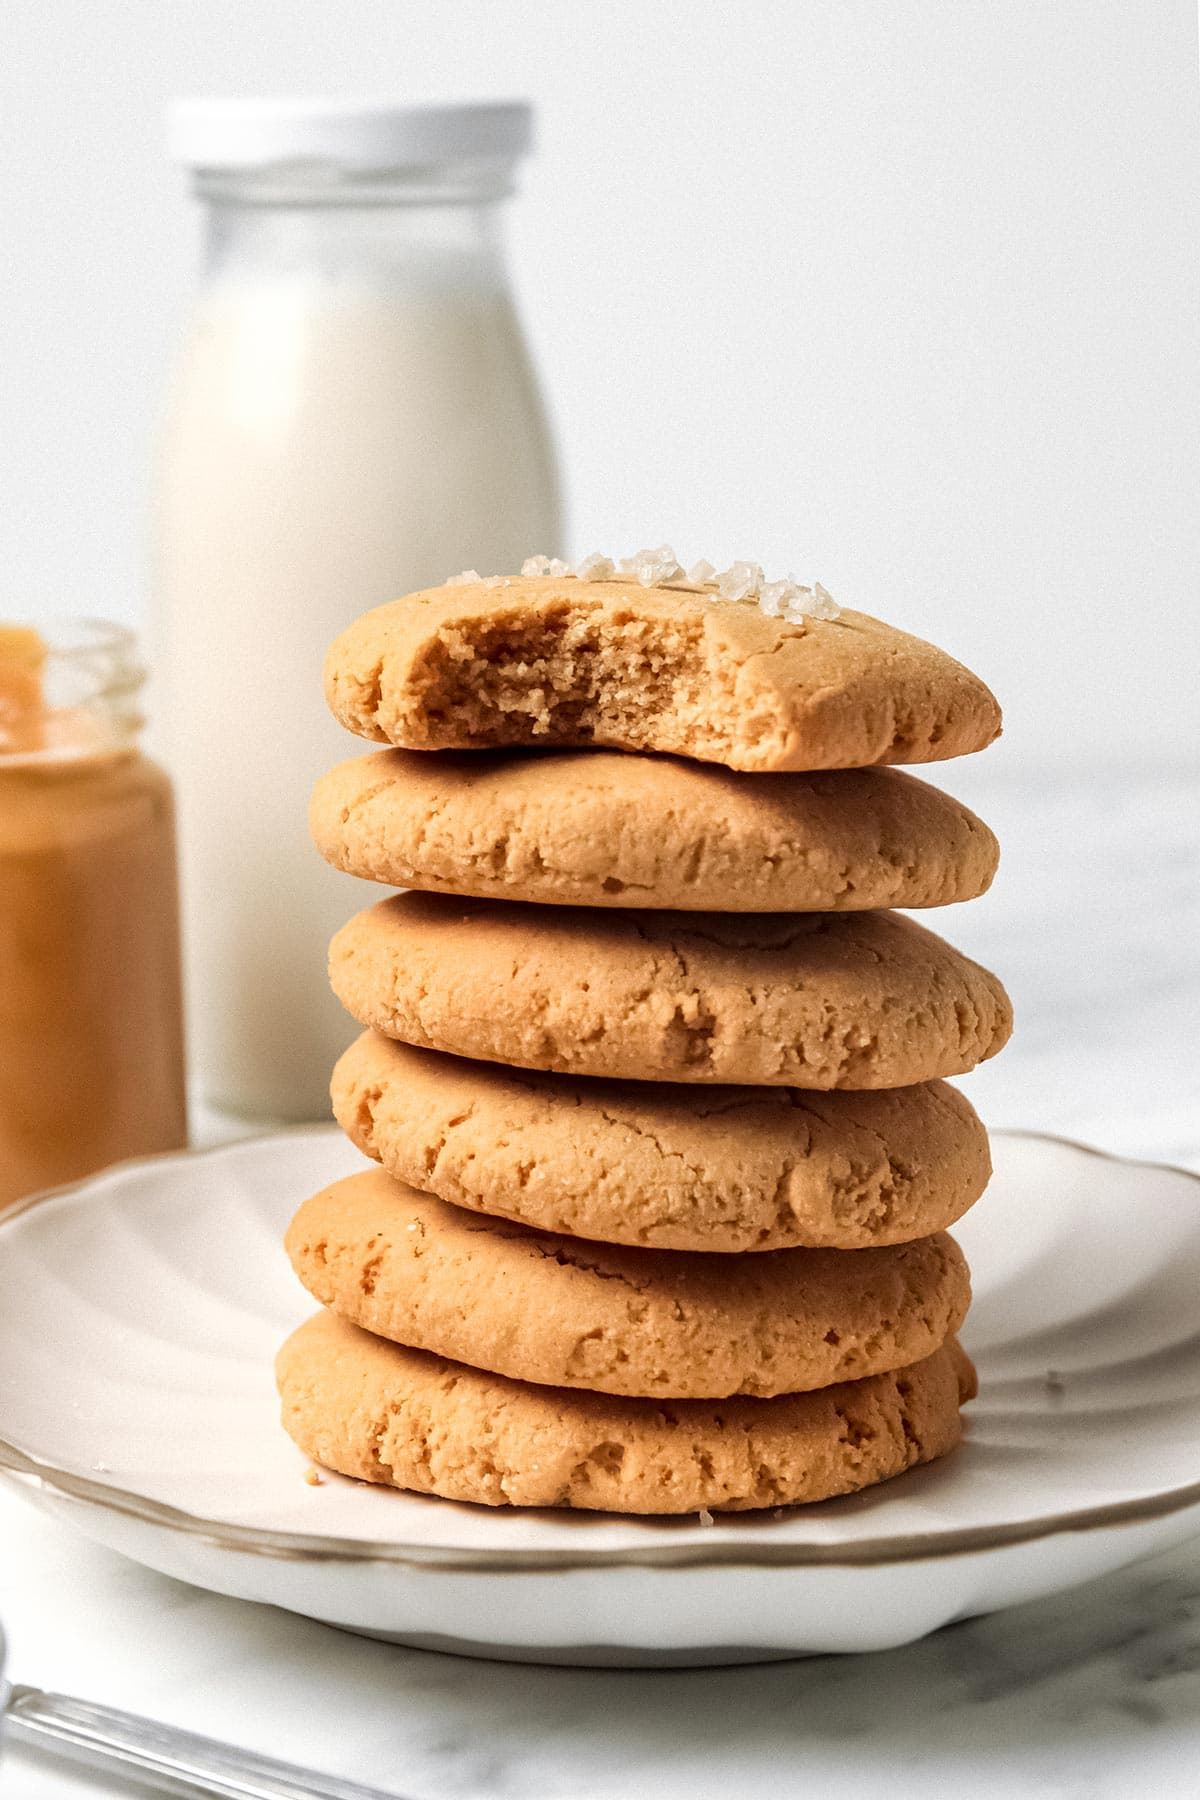 Stack of Keto Coconut Flour Peanut Butter Cookies